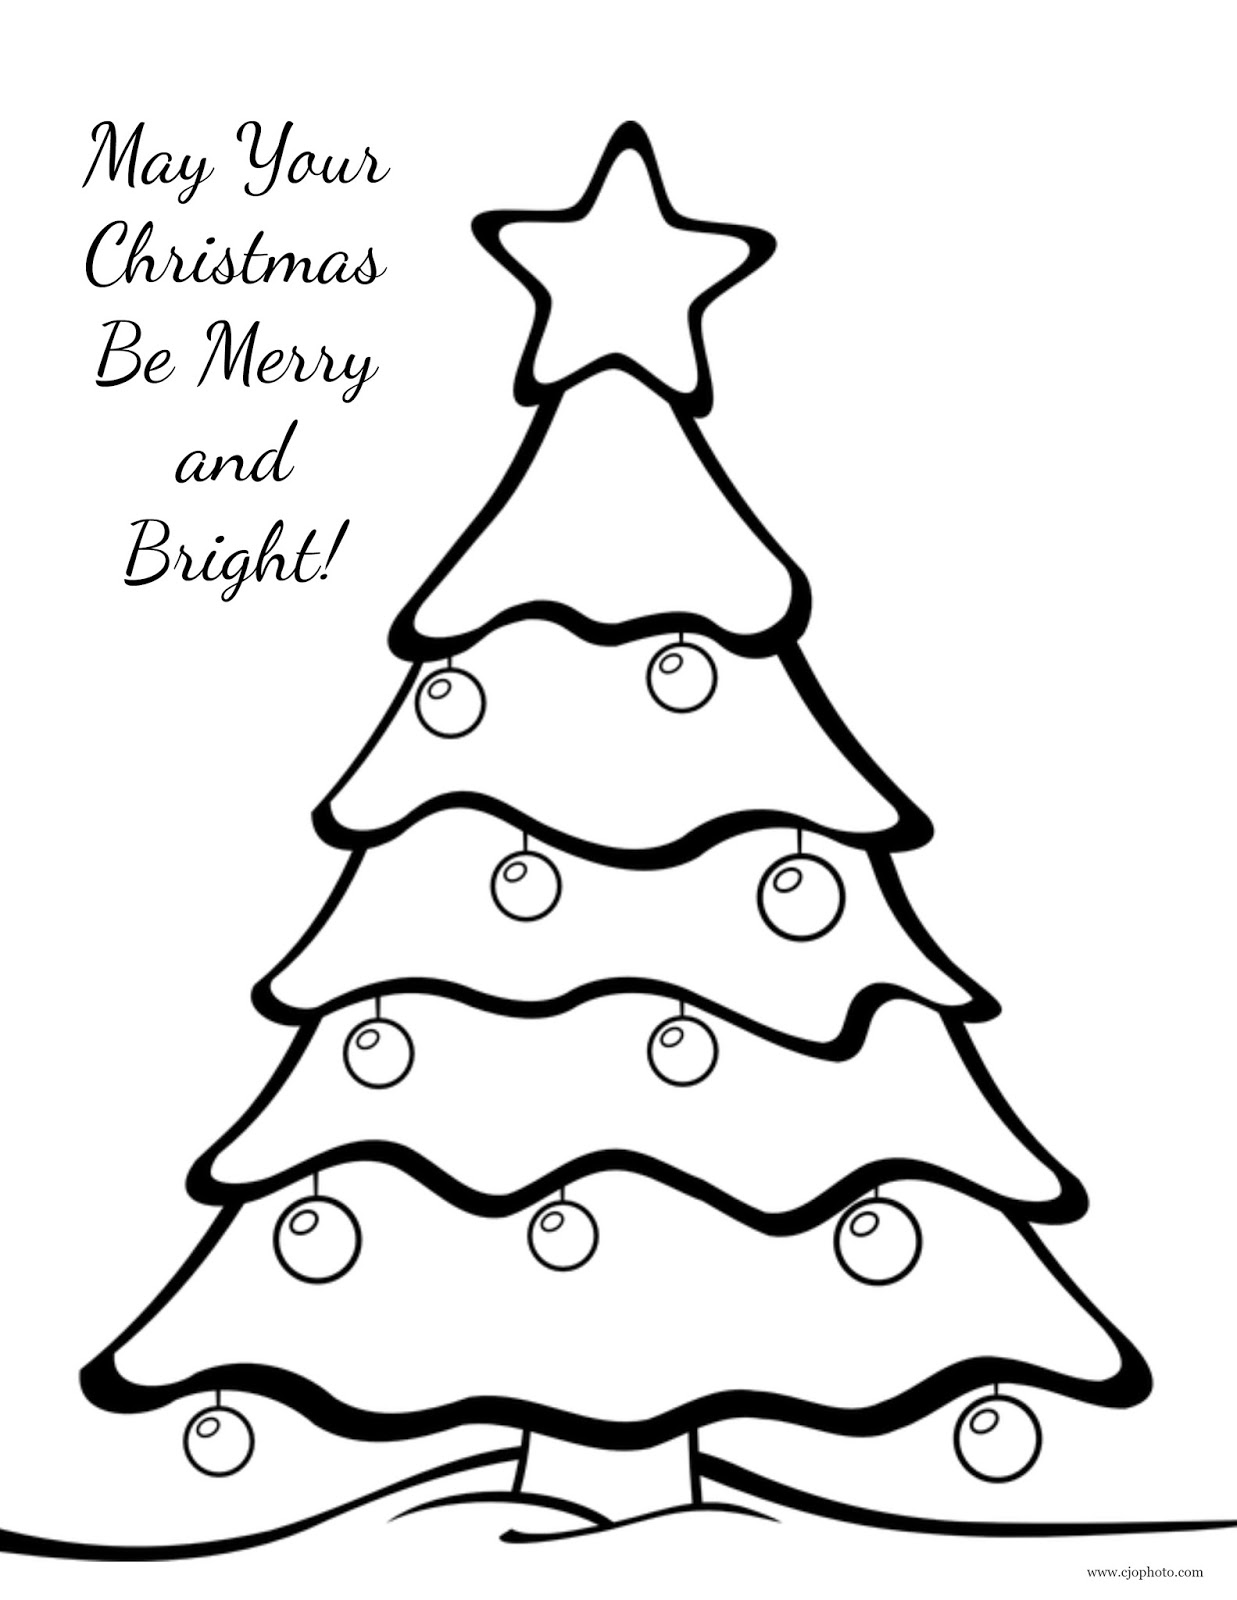 christmas tree coloring pictures free printable christmas tree coloring pages for kids pictures tree christmas coloring